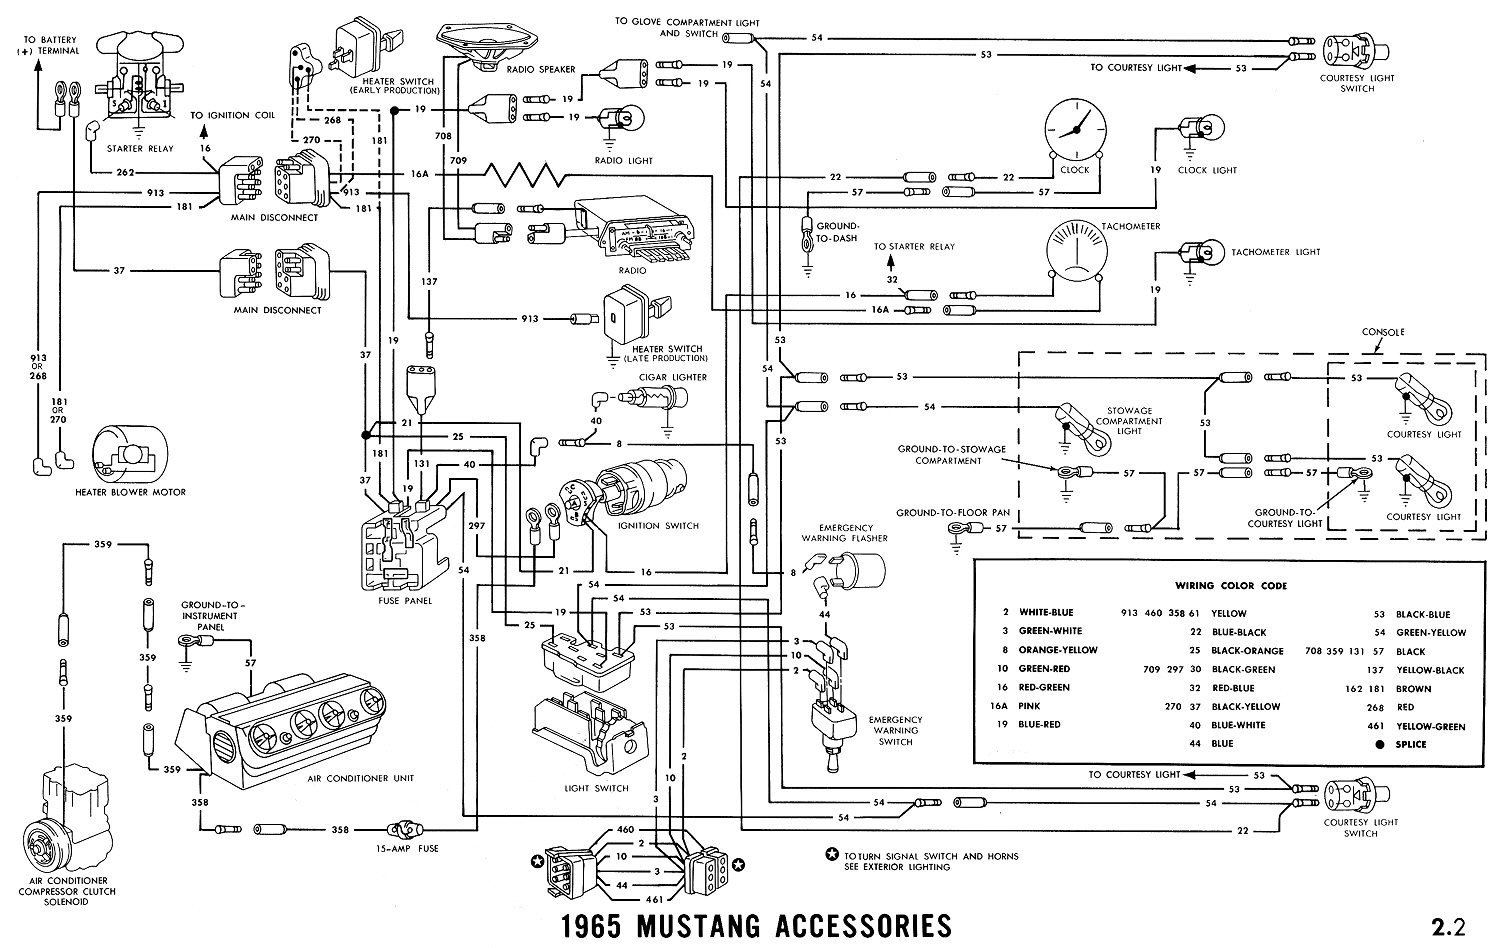 1969 Mustang Dash Wiring Diagram Simple Wiring Diagram 1989 Bronco II Wiring  Diagram 1989 Mustang Dash Wiring Diagram